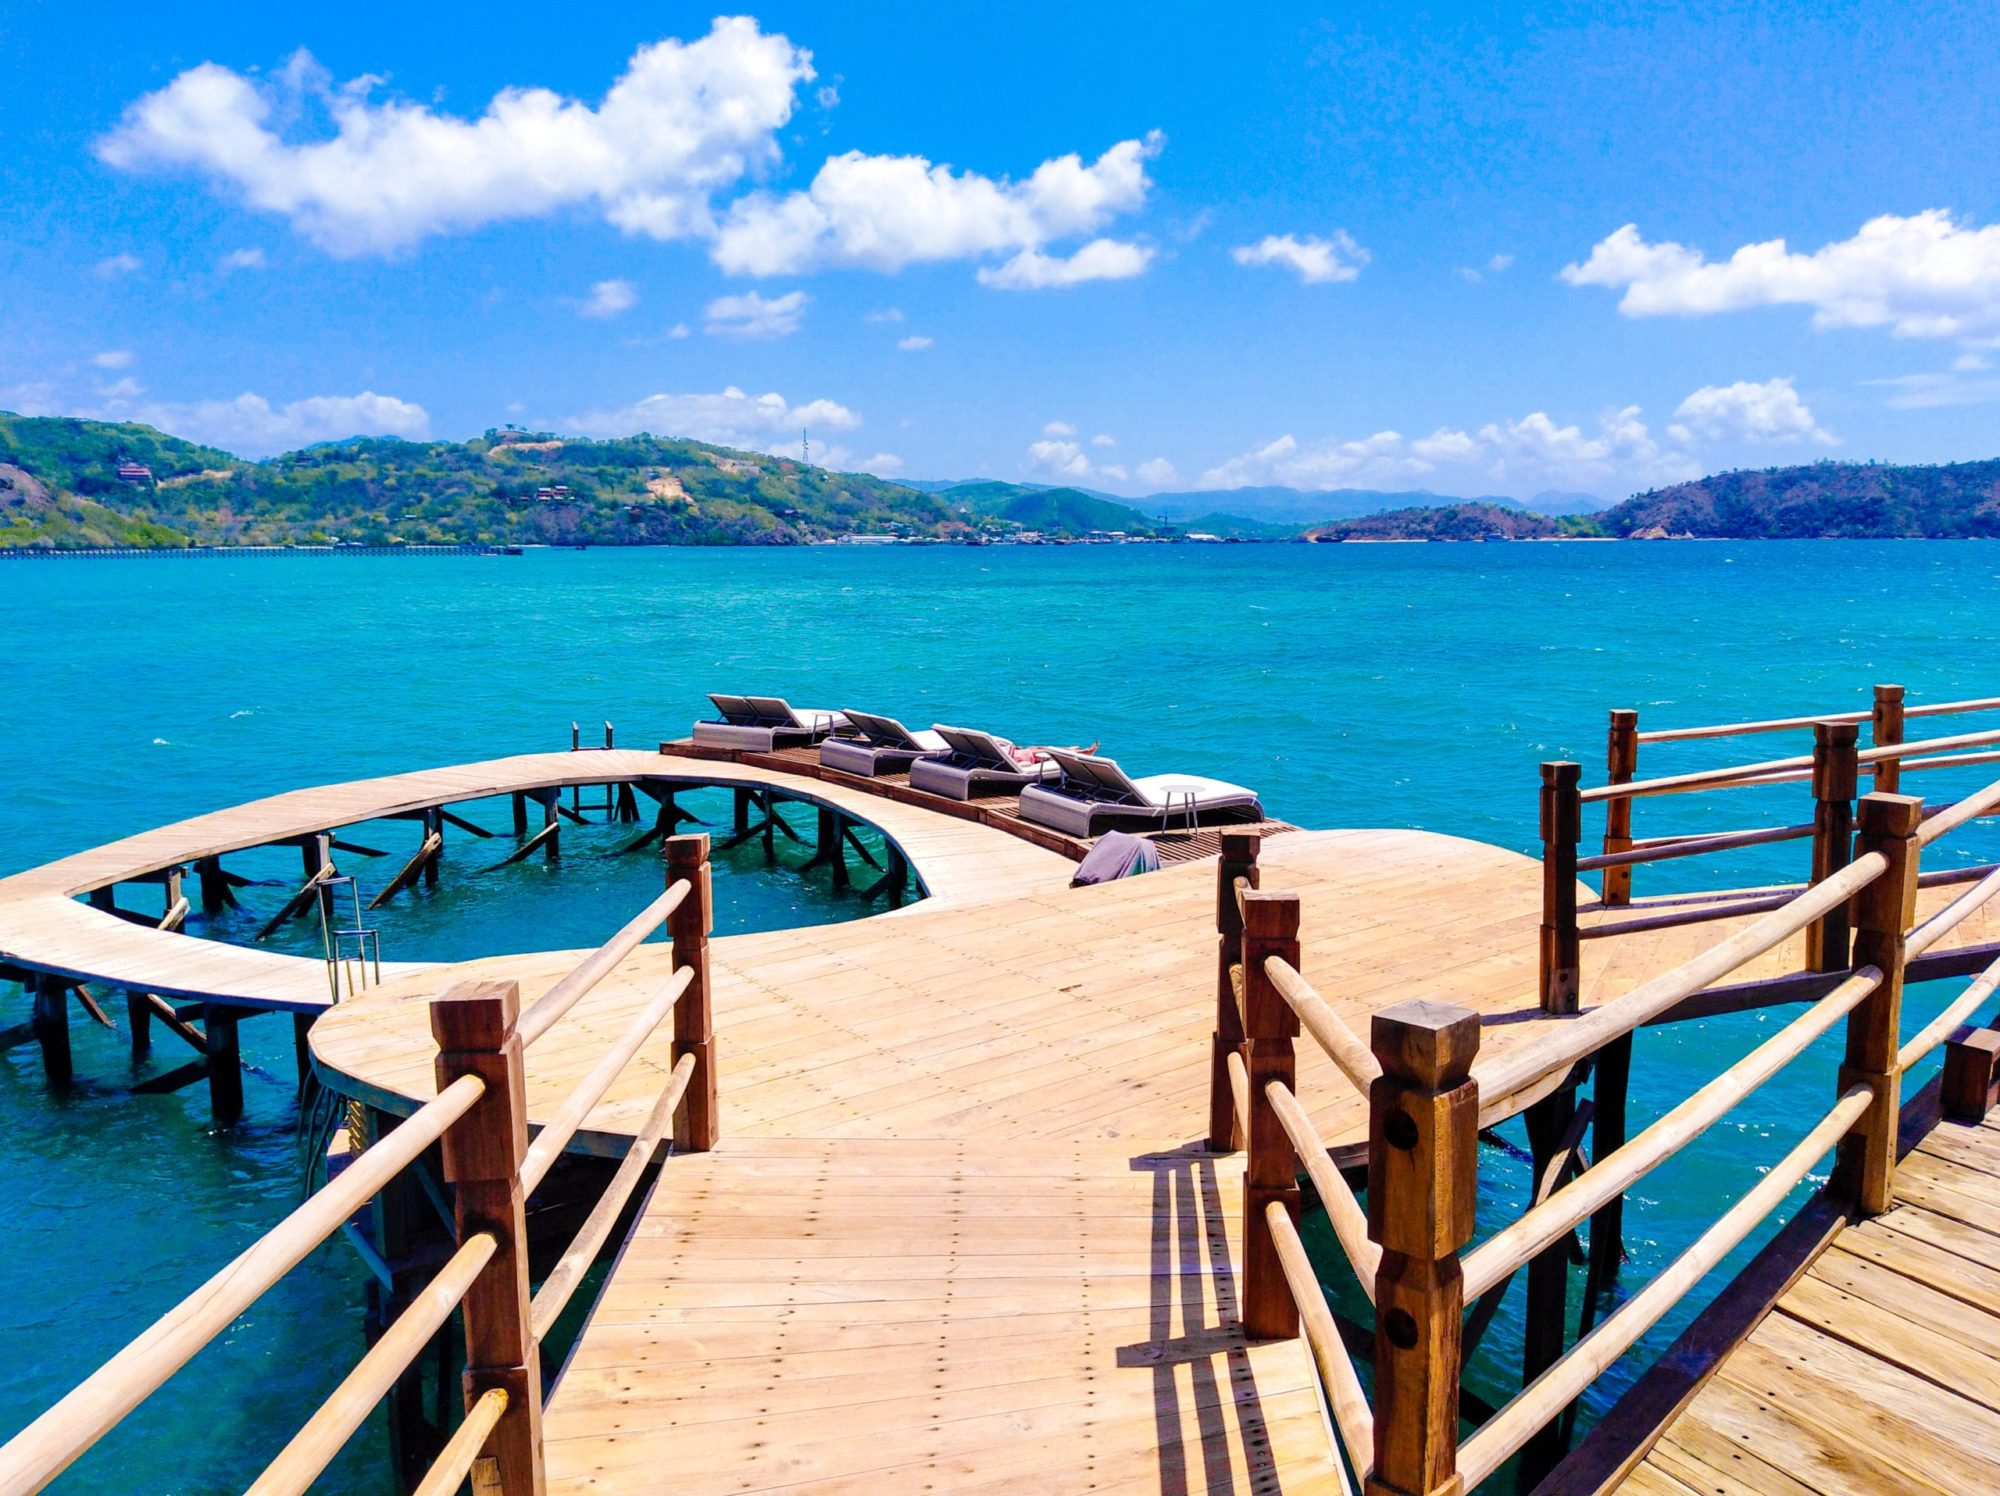 The end of the pier at Ayana Komodo resort